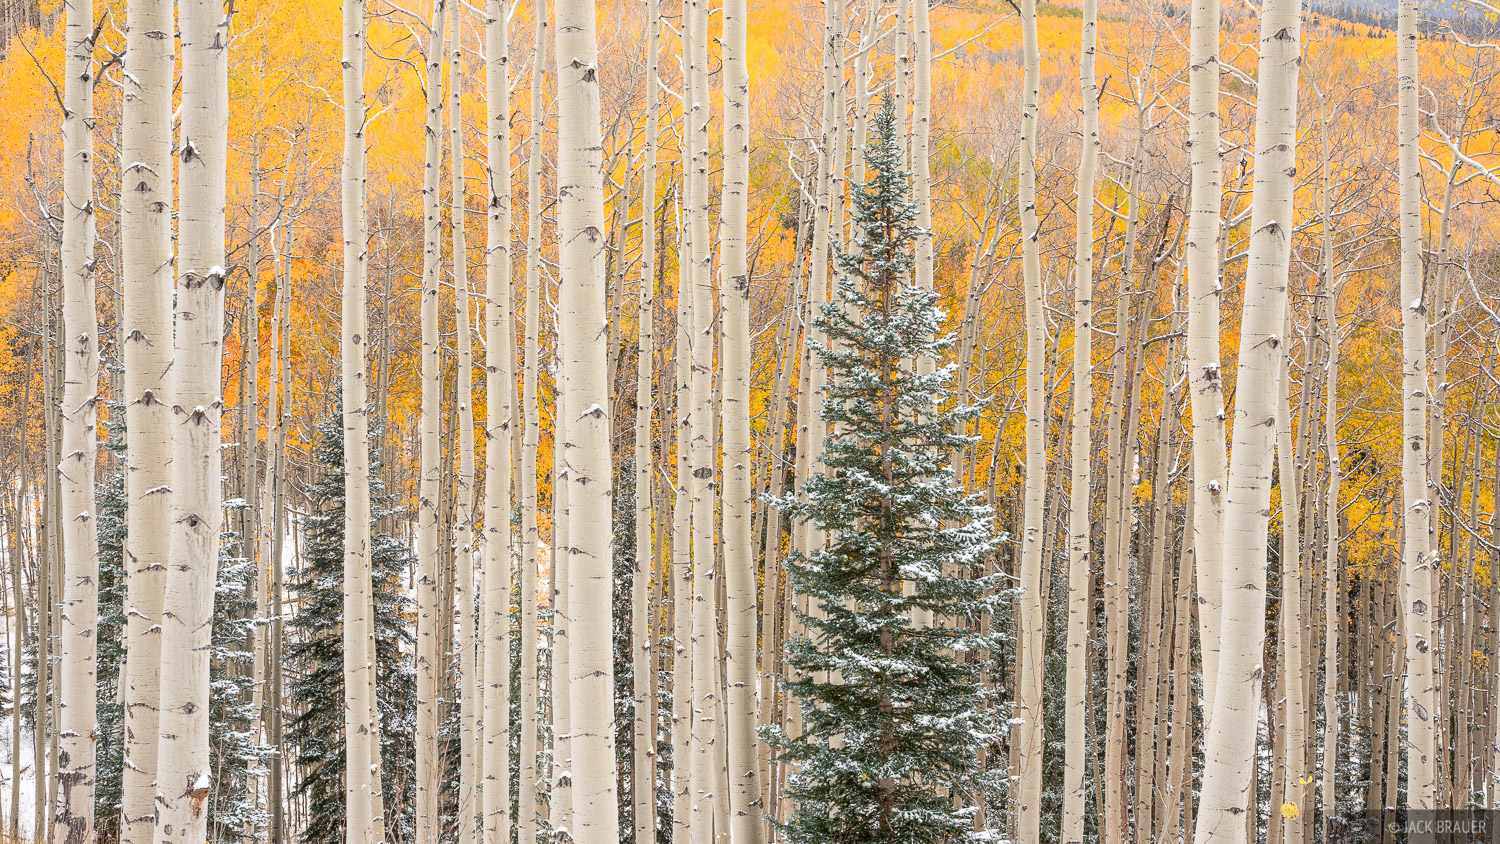 Colorado, San Juan Mountains, aspens, autumn, photo